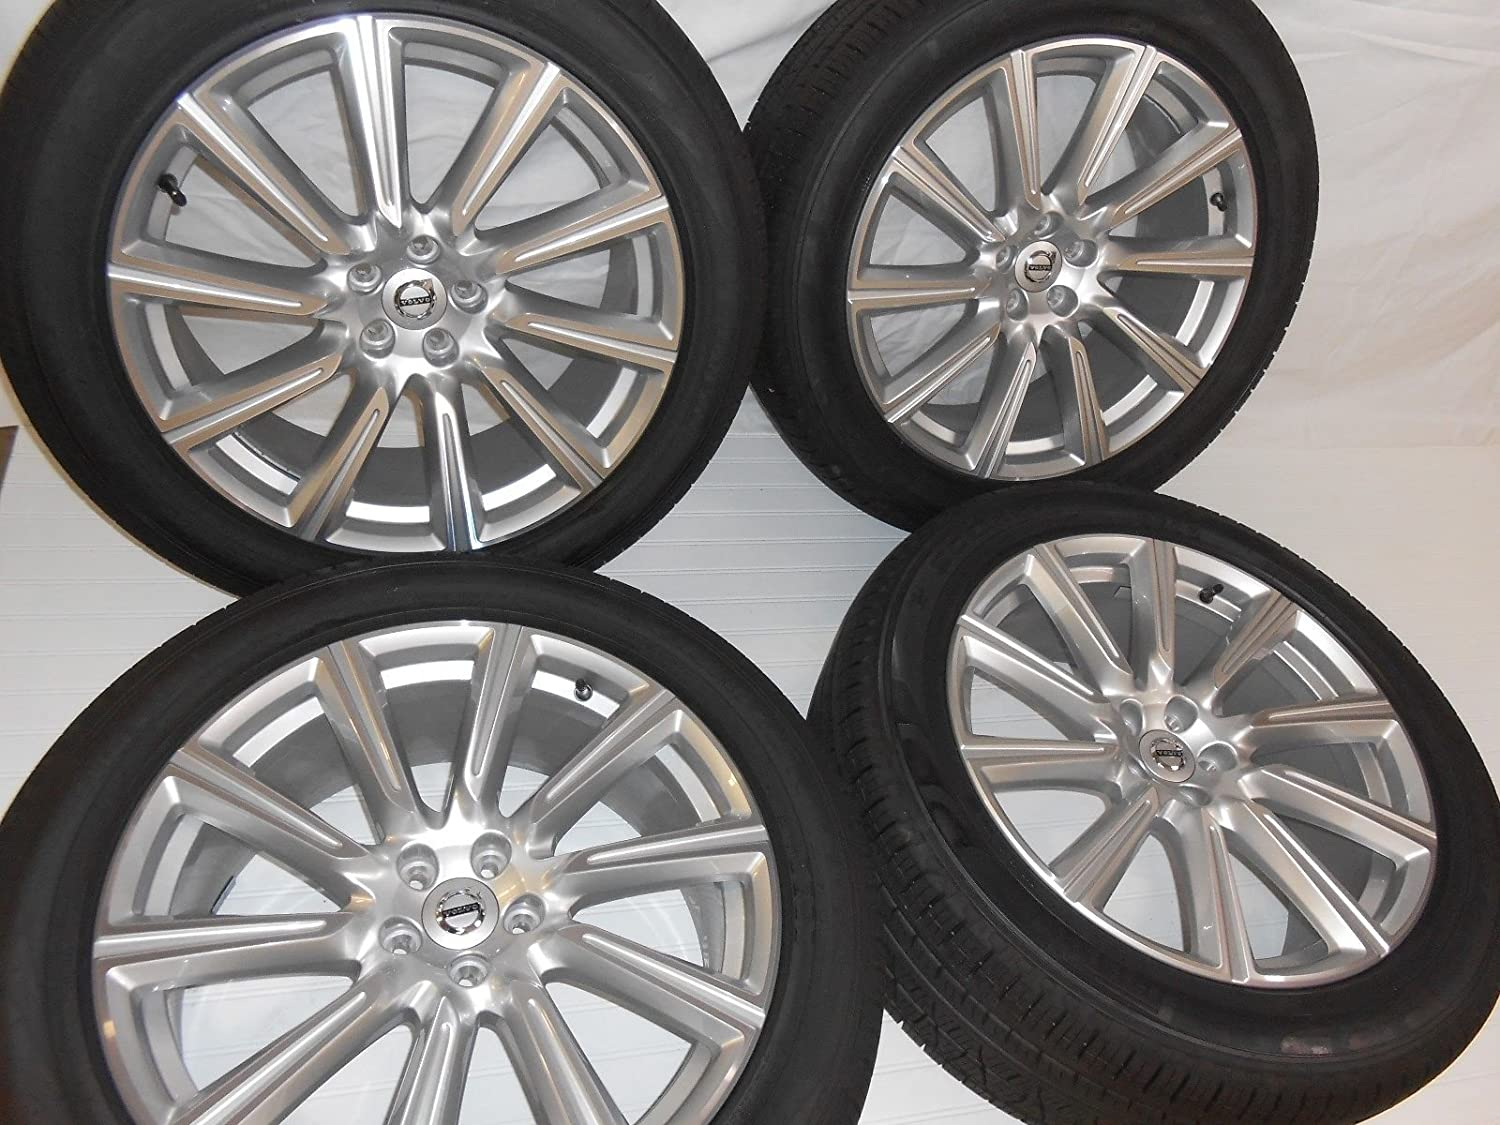 VOLVO XC90 2016-UP WHEELS AND TIRES (4) 20 INCH 10-SPOKE TAKEOFFS